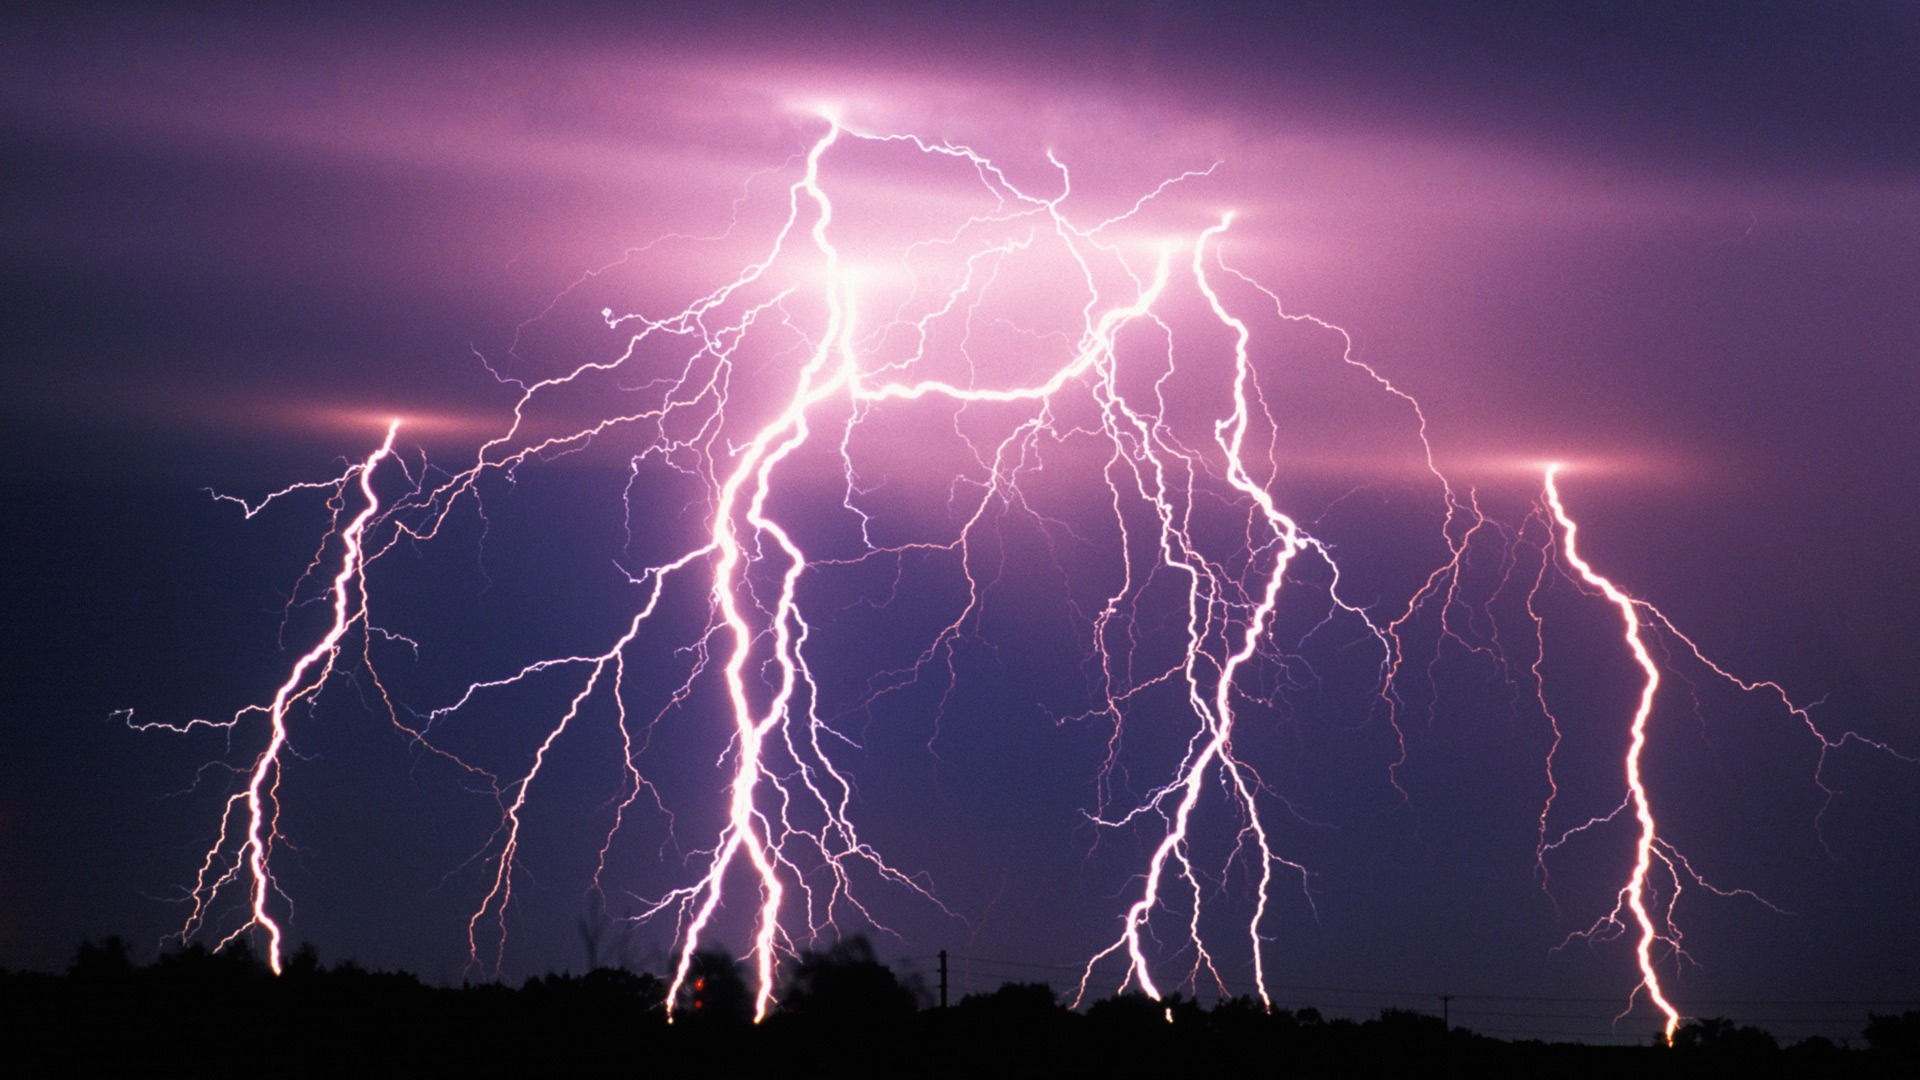 new lightning capital of the world gets 603 strikes per